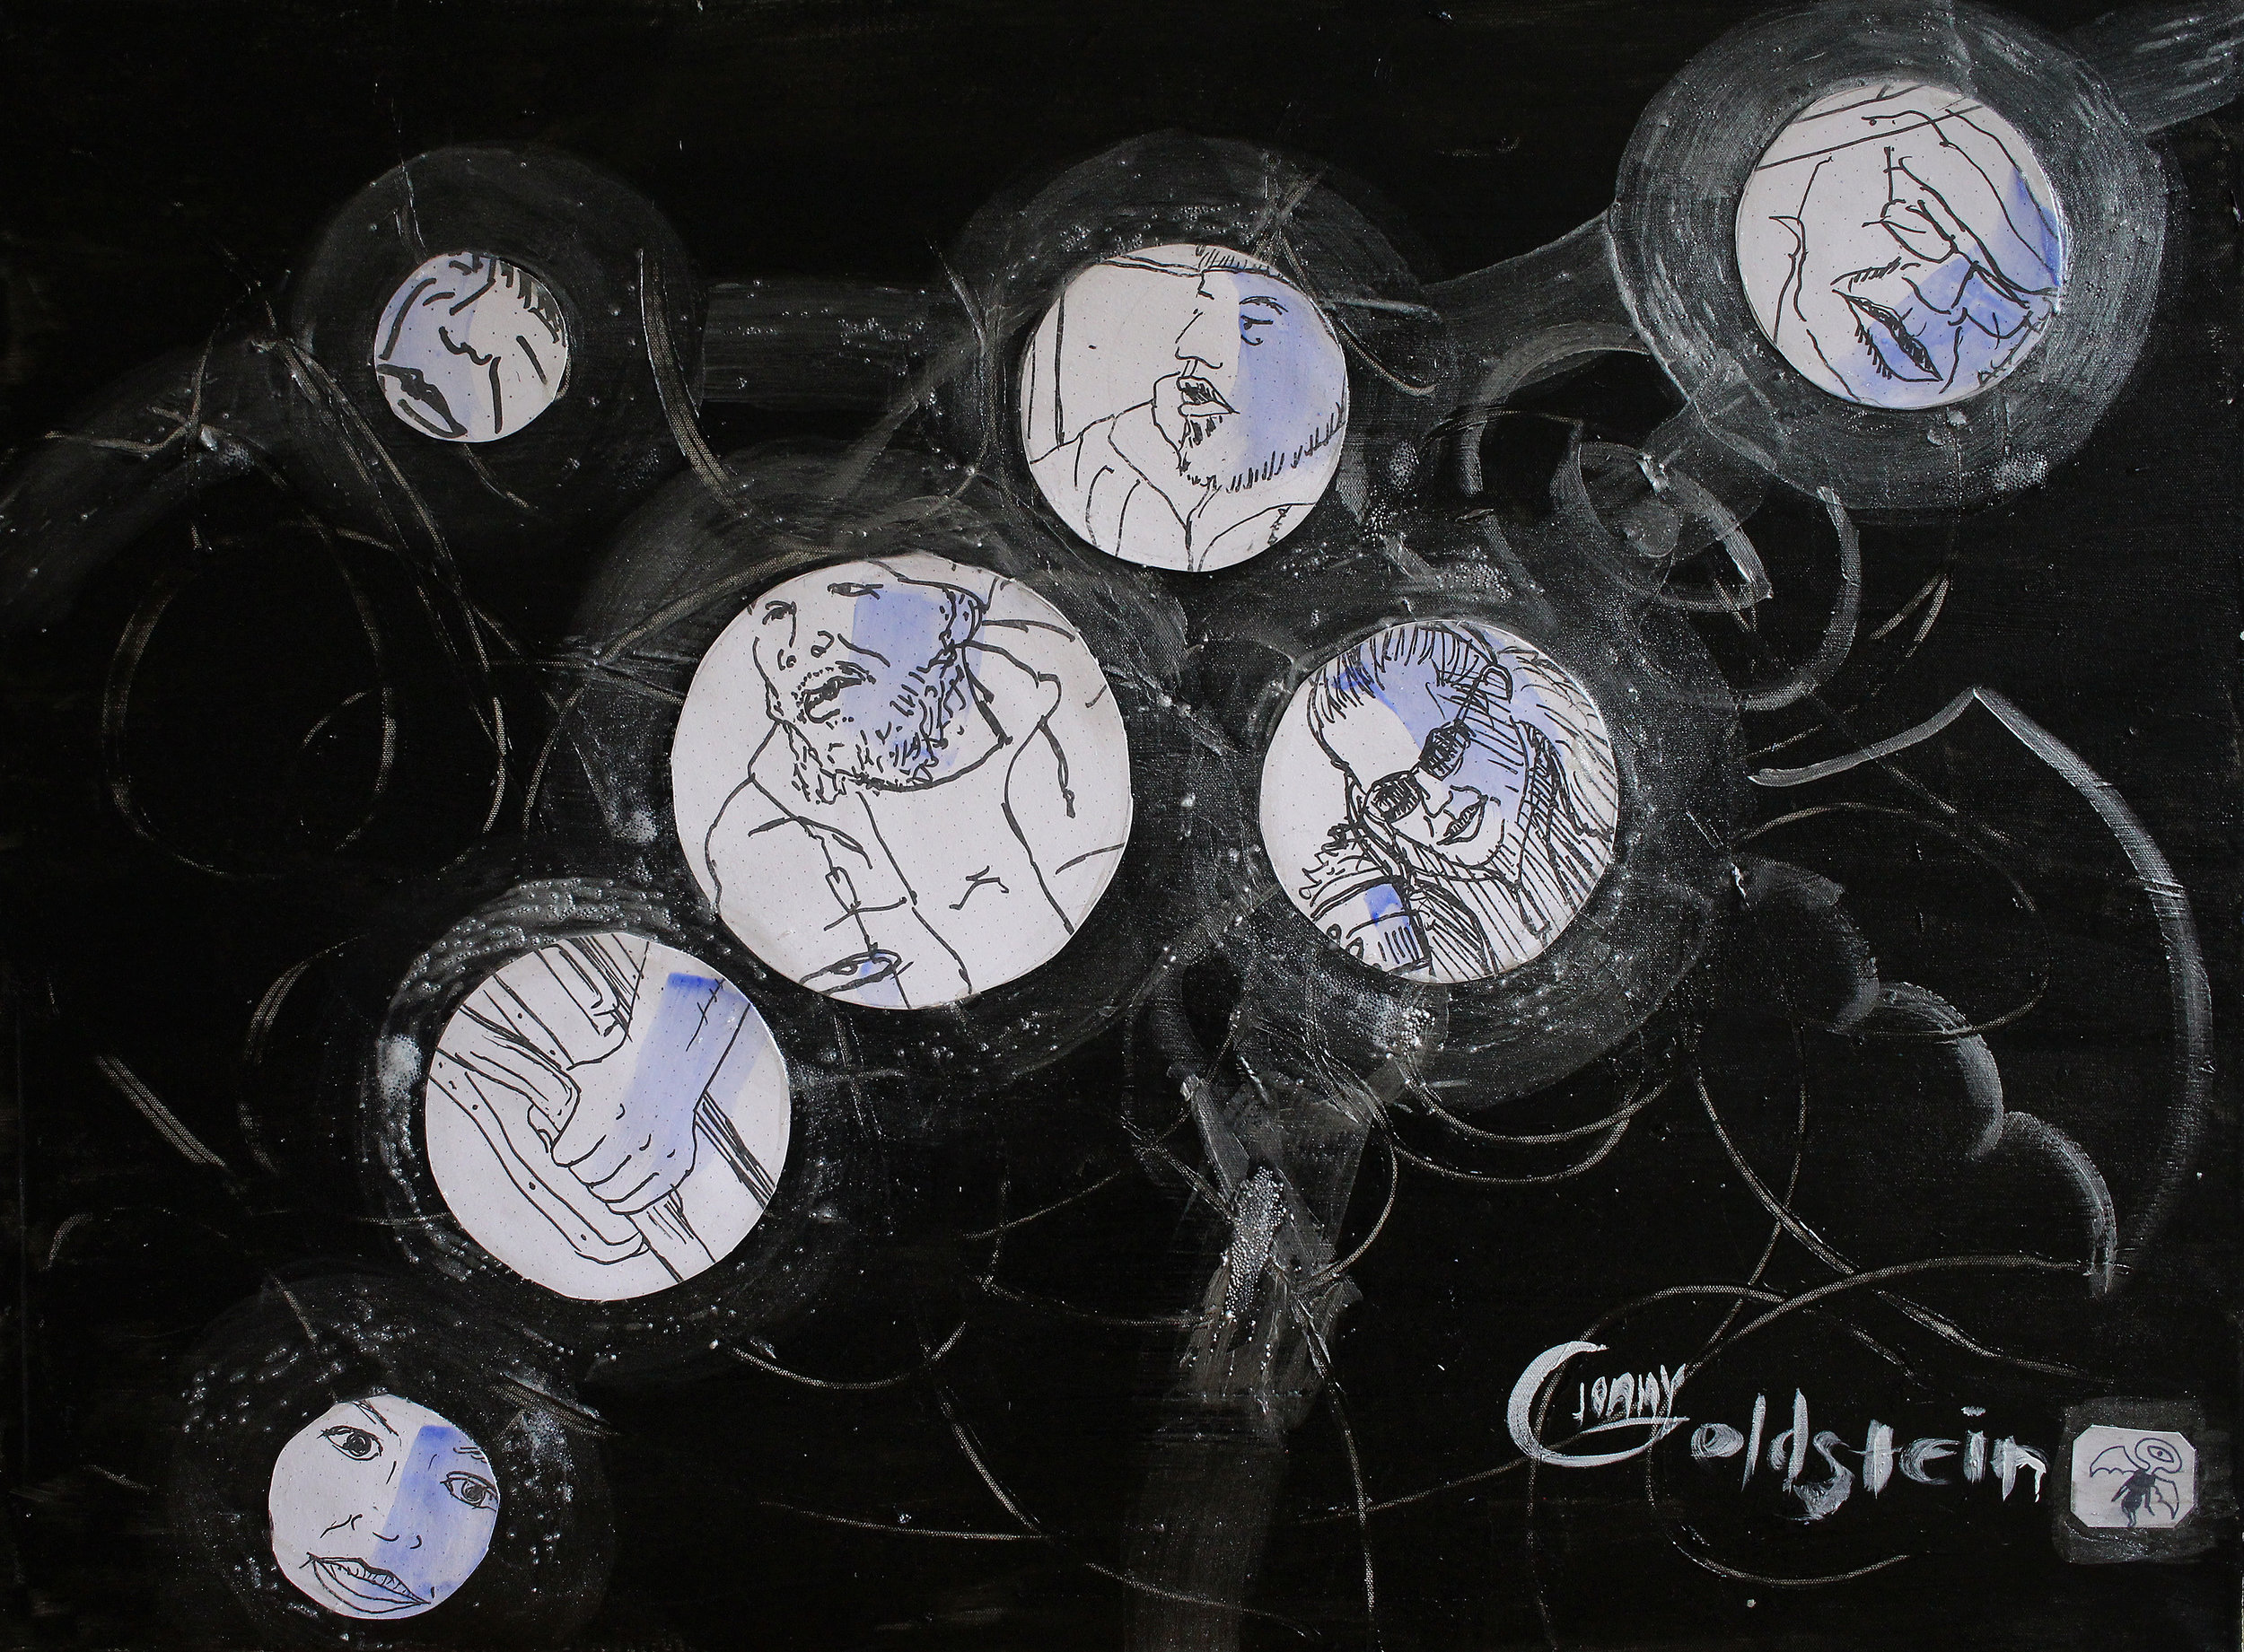 Title: Subway Bubbles: Flying Cyclops. MIxed Media: acryclic, Xerographs, and glass beads on canvas.